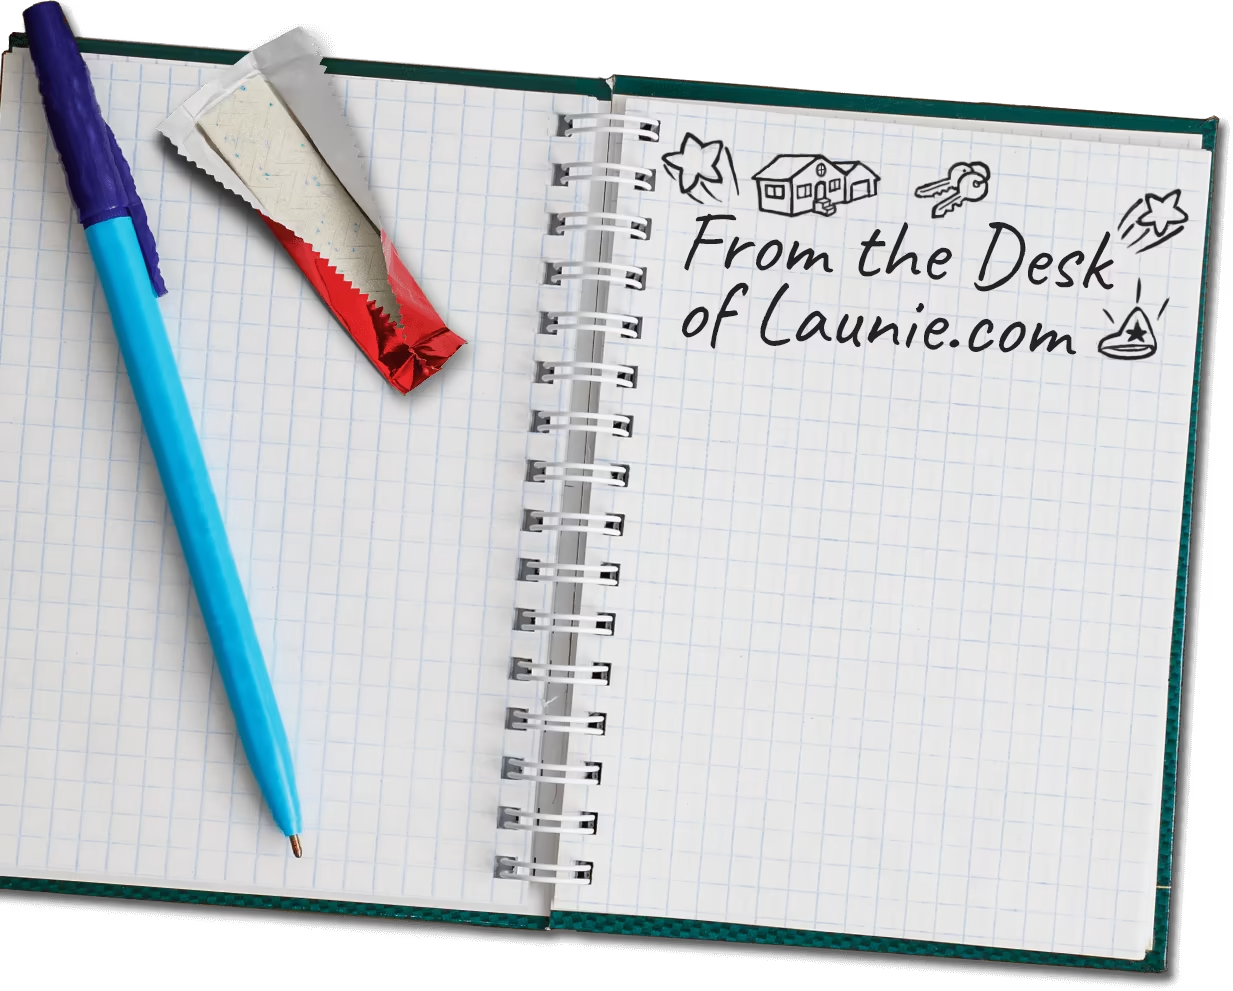 From the Desk of Launie.com